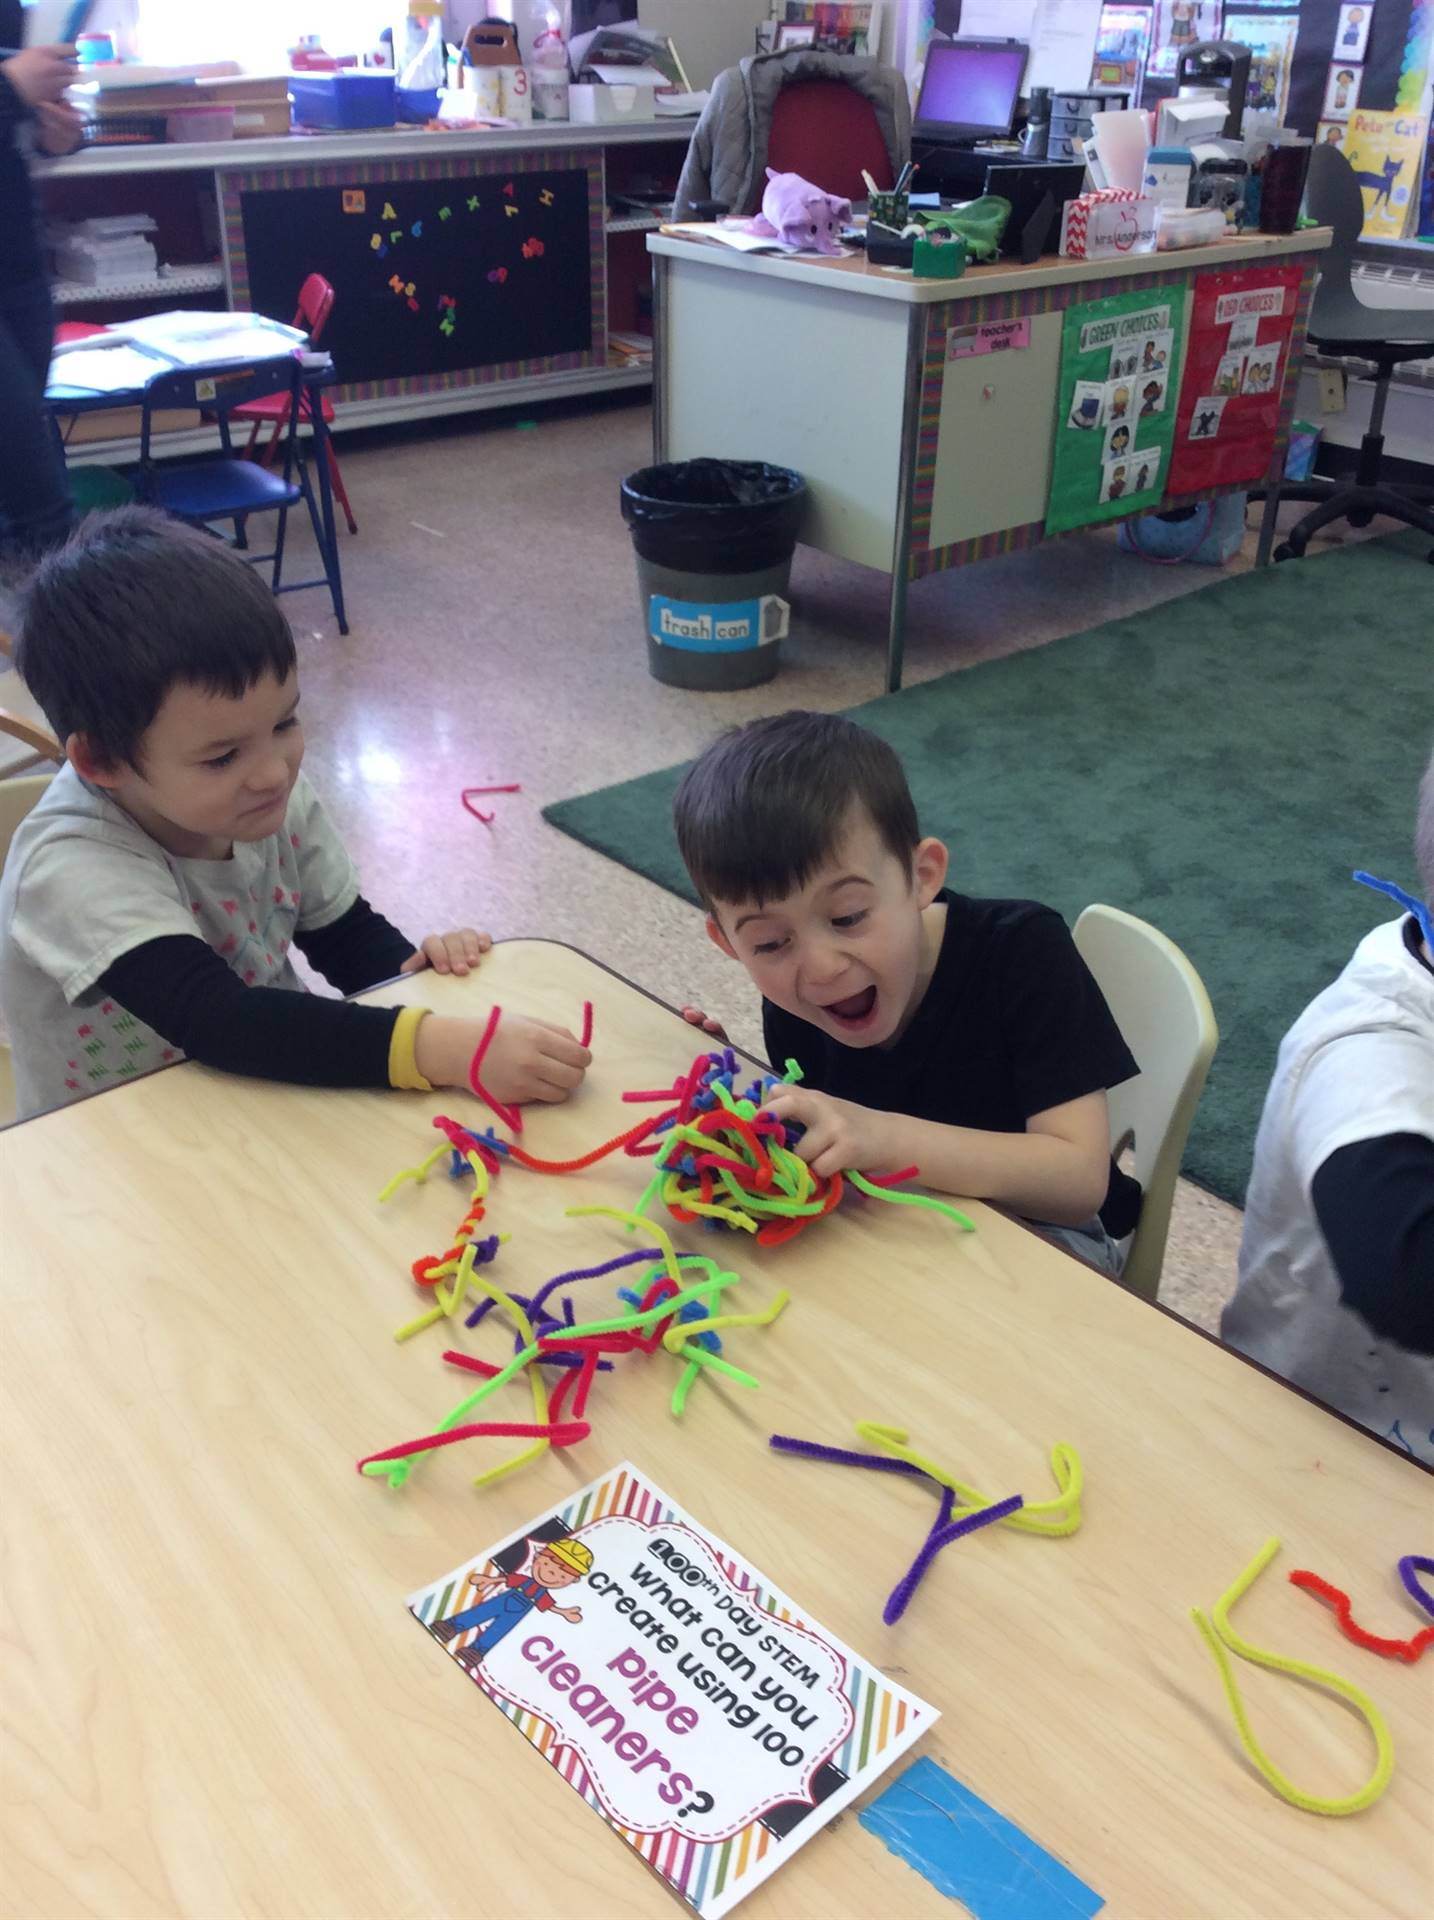 Two boys sitting at a table in their classroom attempting to construct a ball with 100 multicolored